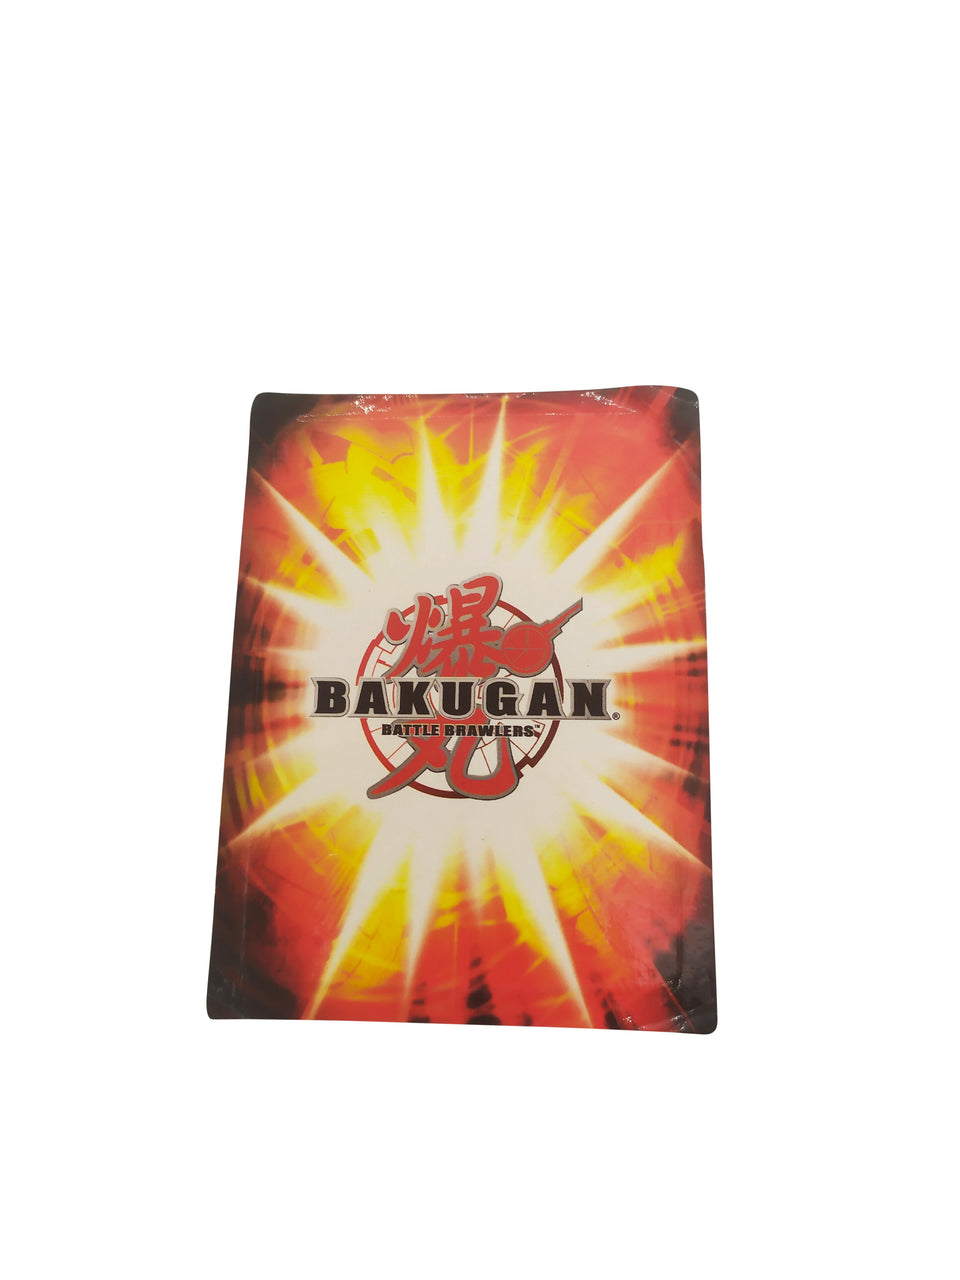 BAKUGAN BATTLE BRAWLERS - COLOR RED- special  2009&2011